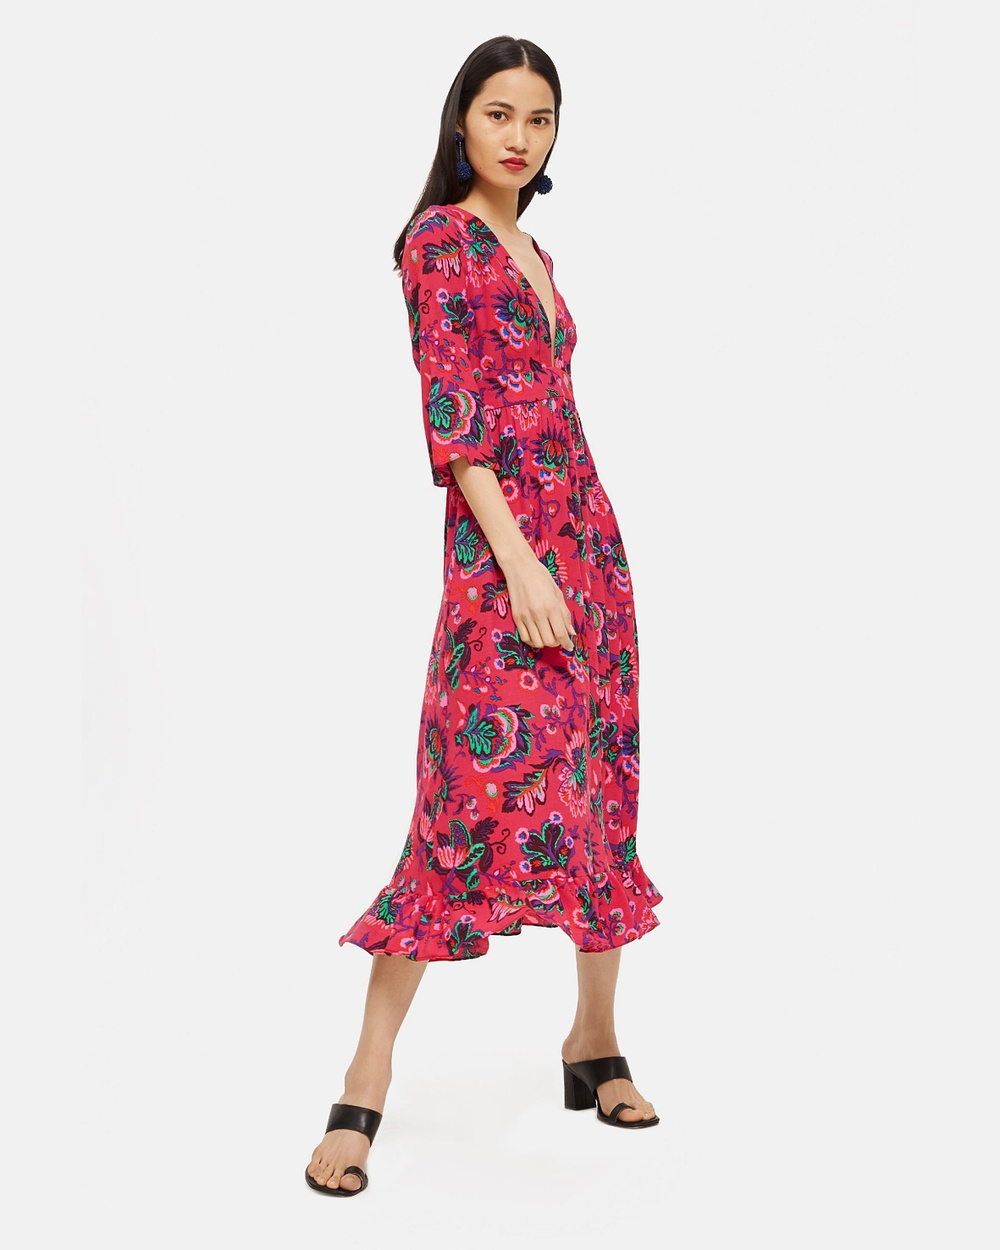 TOPSHOP Culture Print Smock Dress Printed Dresses Multi Culture Print Smock Dress